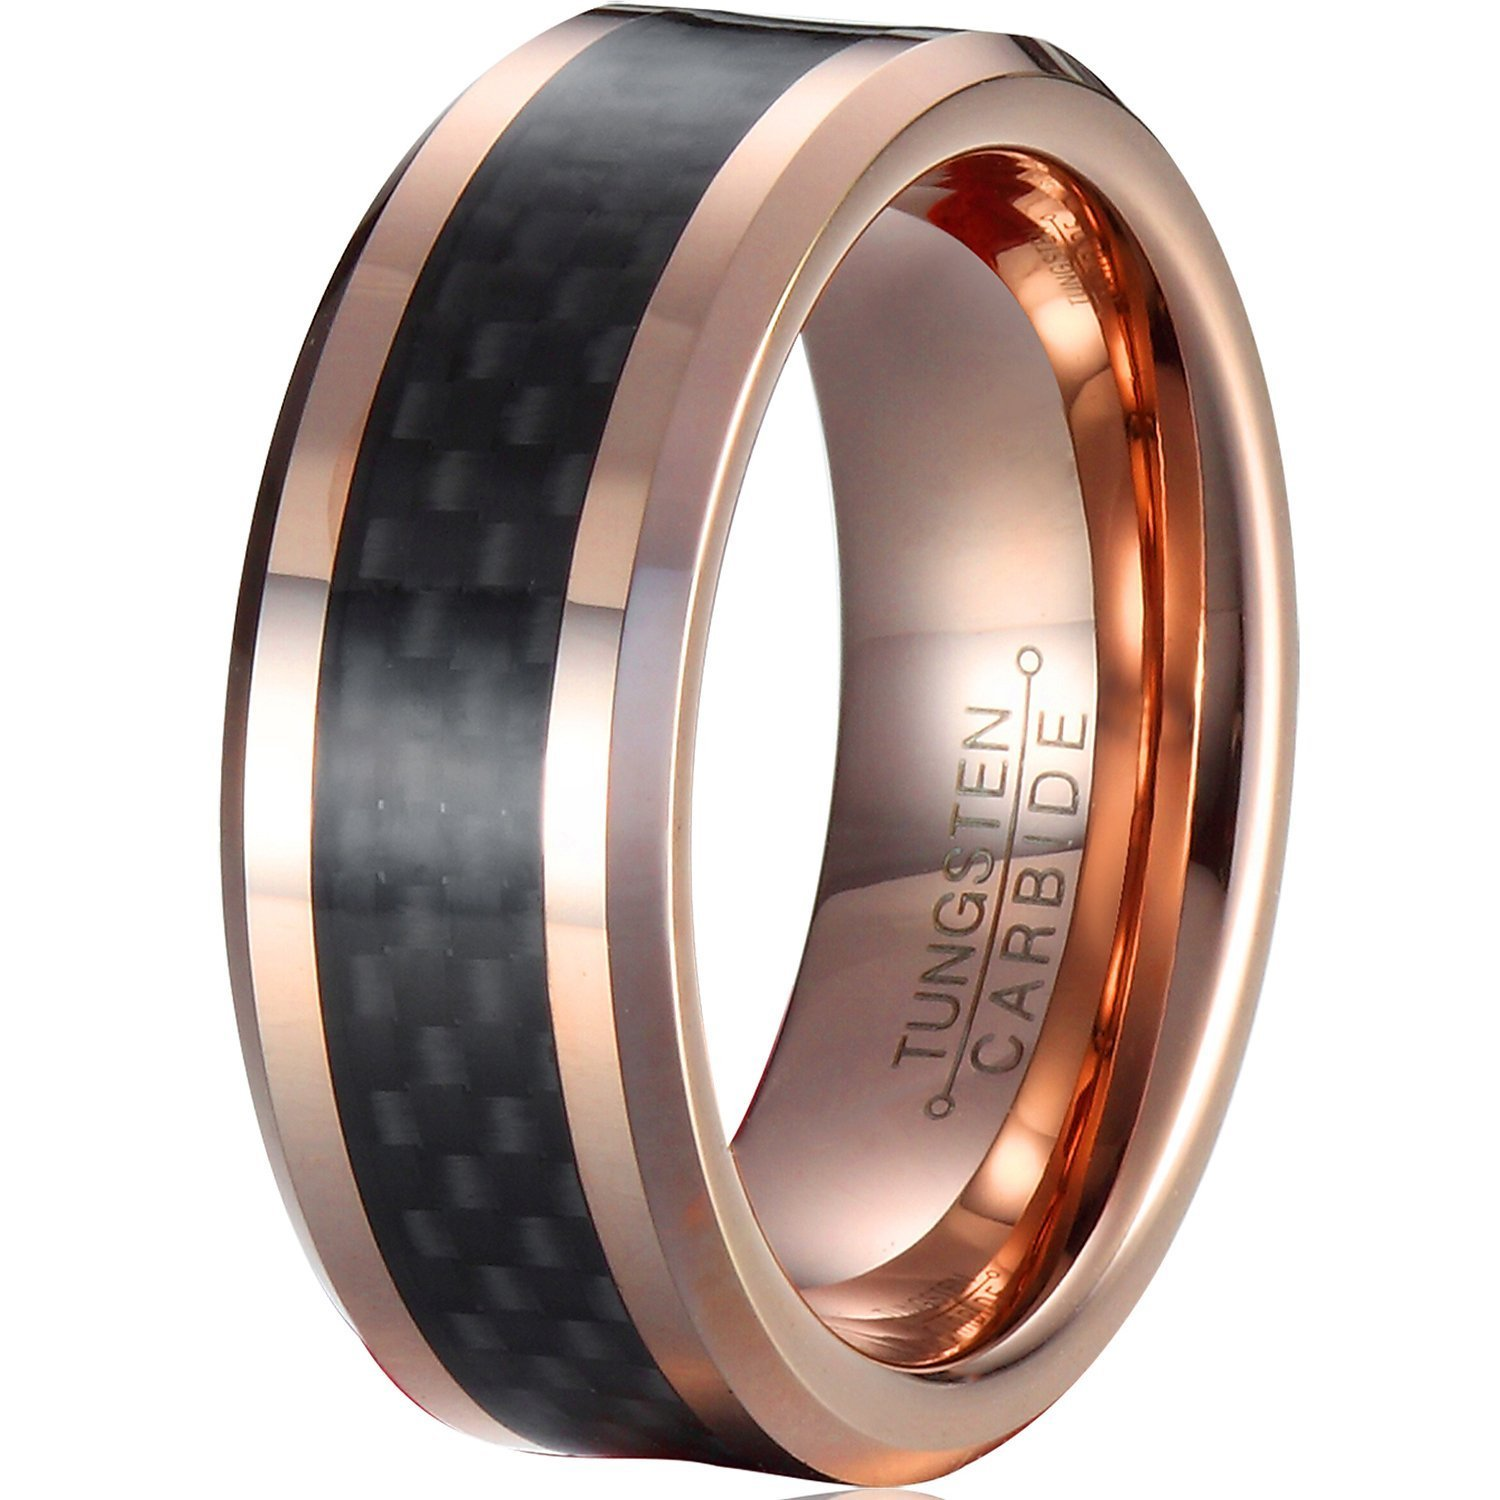 Tungsten Wedding Band for Men 8mm Rose Gold Plated Black Carbon Fiber Inlay Beveled Edge -Kiss me (5)